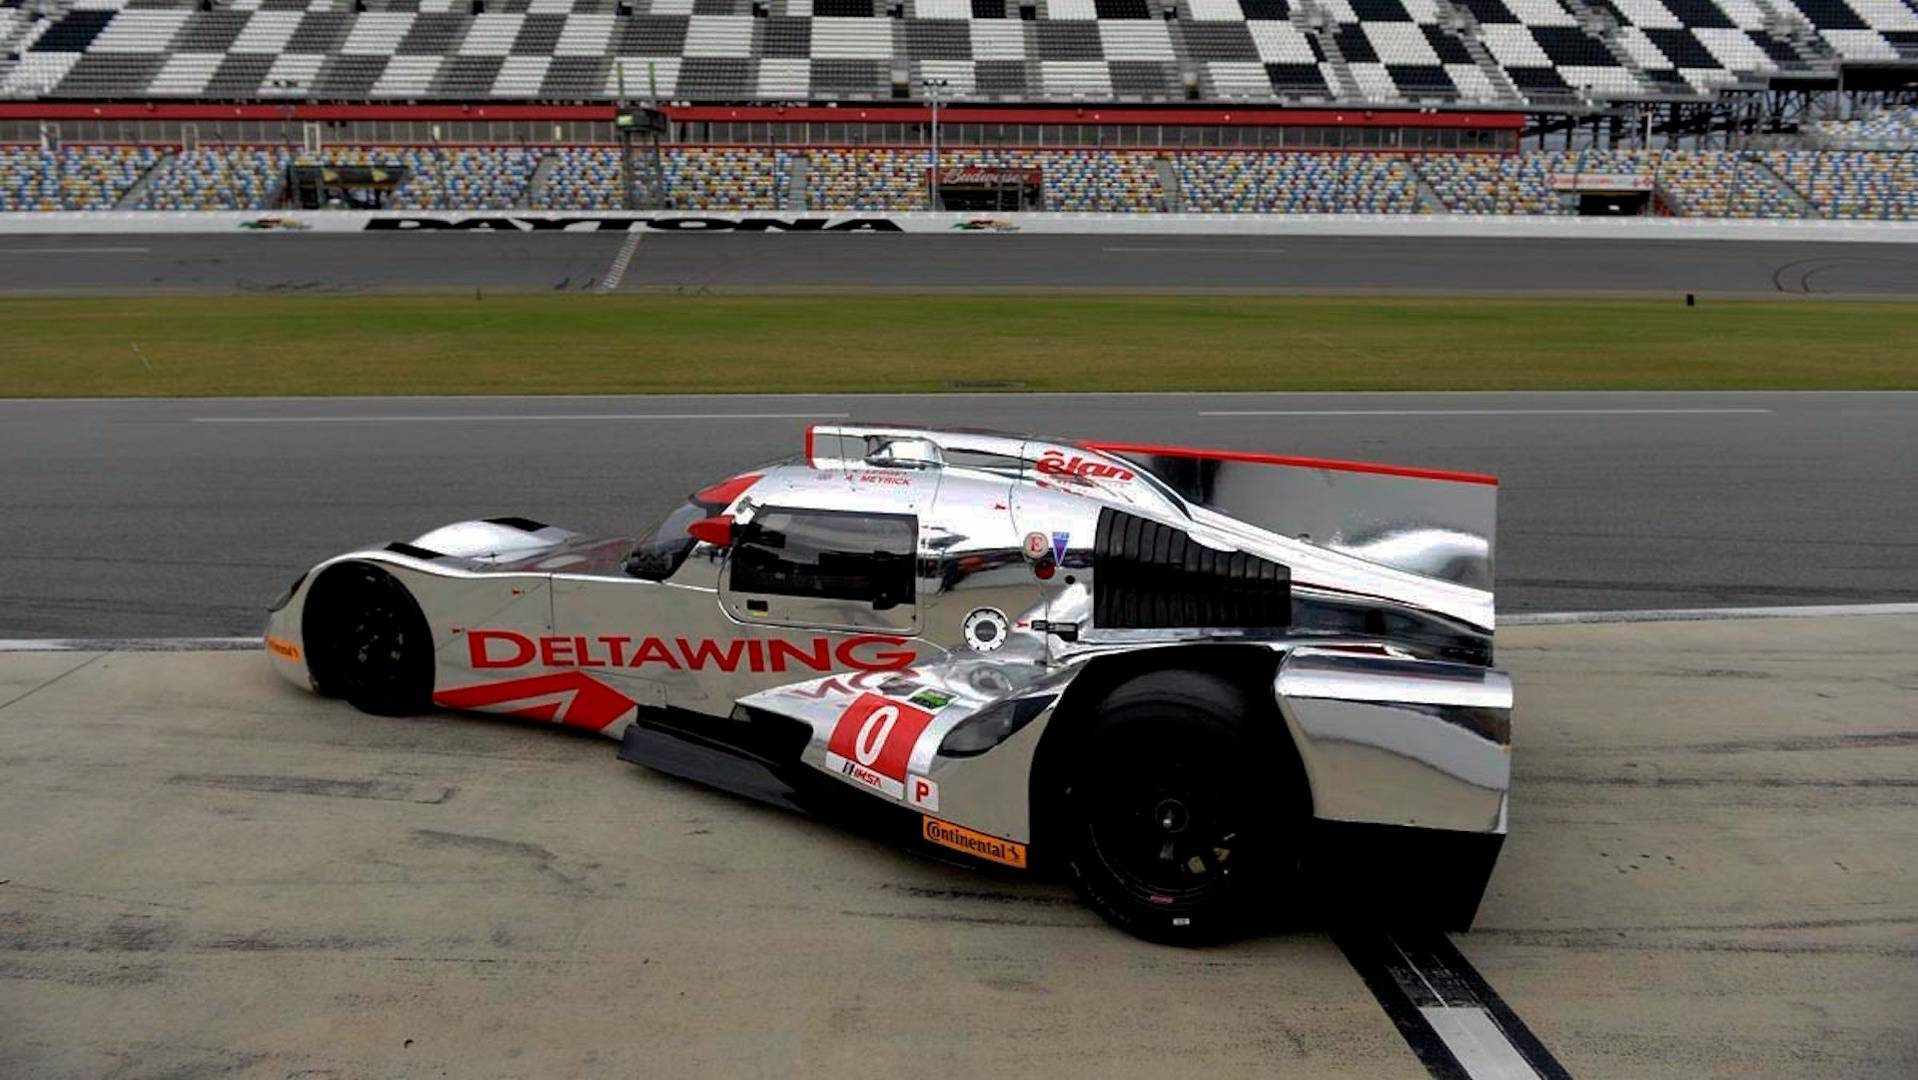 DeltaWing 2013 for sale (6)